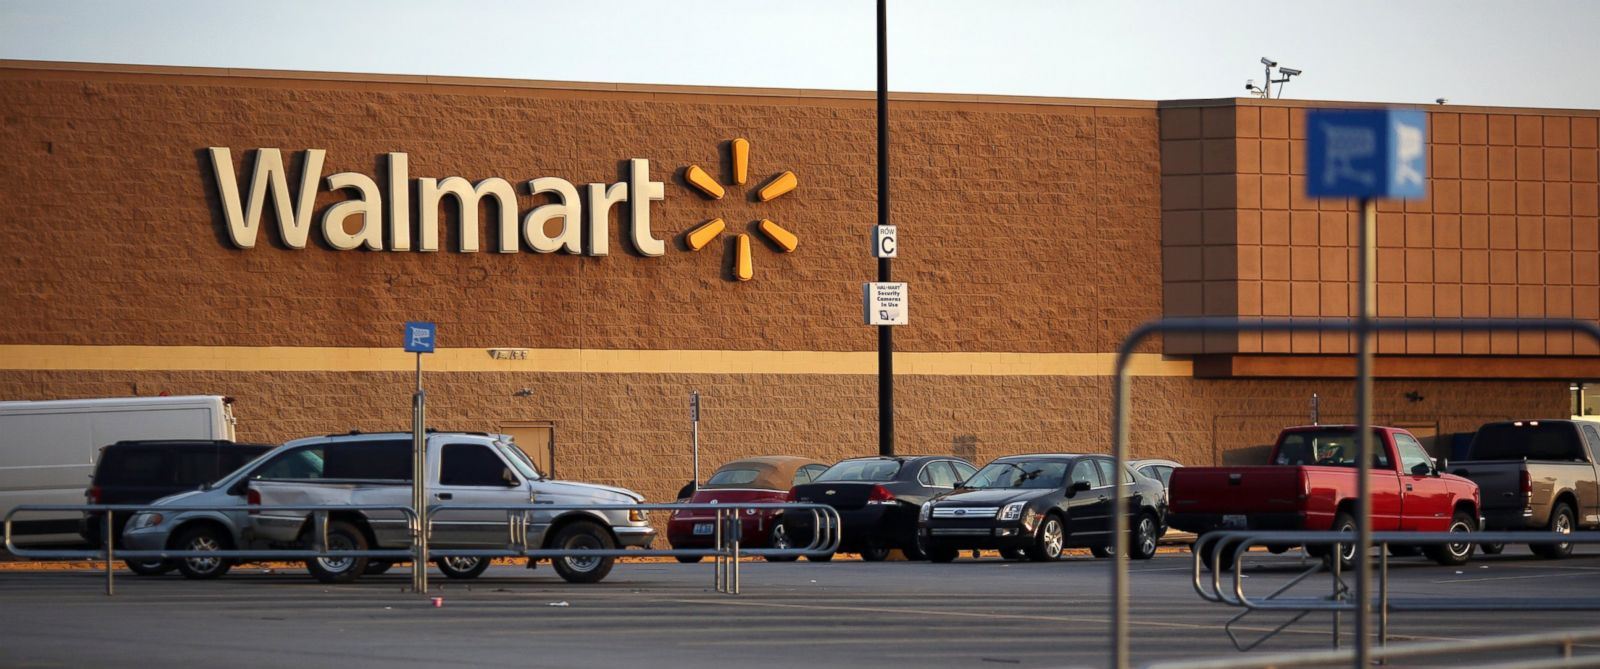 PHOTO: Vehicles sit parked outside a Walmart store in Shelbyville, Ky., May 18, 2015.